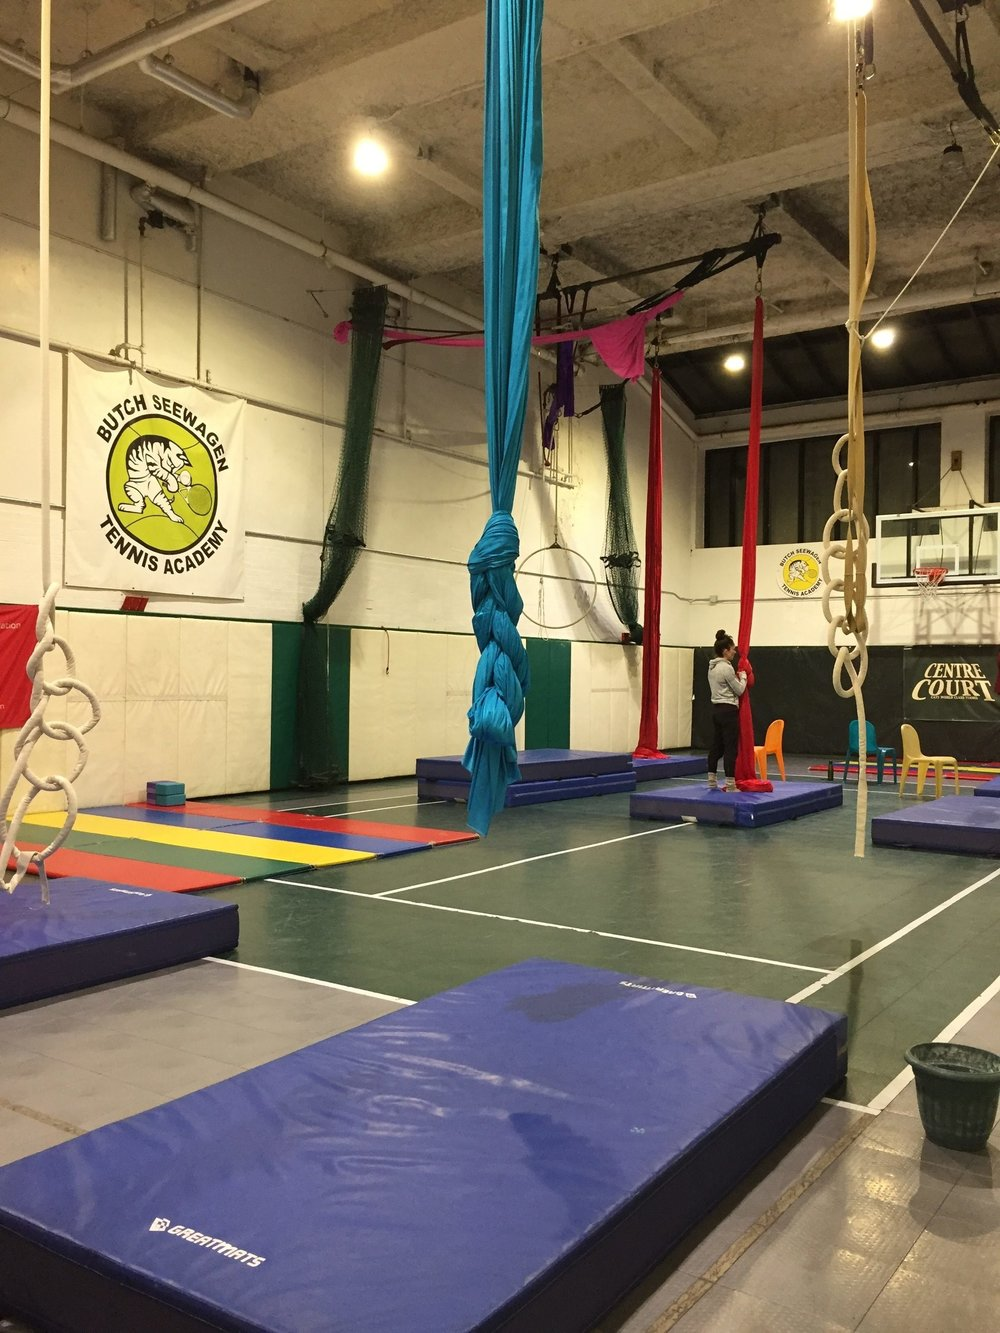 4PM   To try to get the news off my mind, I head to my aerial silks class. Check #3 off my list.  I forgot to record audio in this space. The audio would be 'tin-y' and 'echo-y' anyway, so it's probably better that I didn't ;)